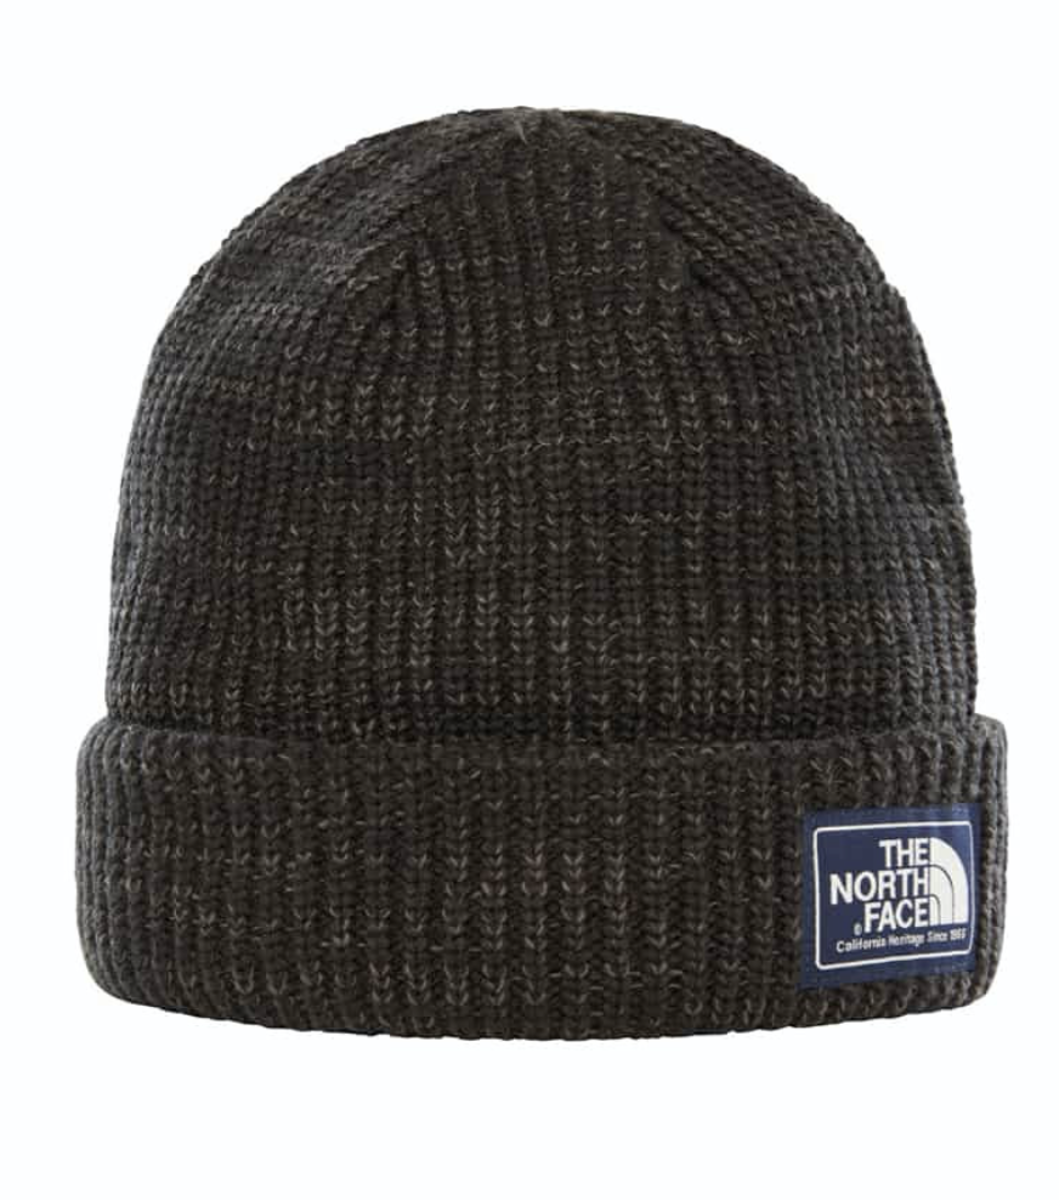 Bilde av The Northface salty dog beanie NFOA3FJWJK3-OS-REG